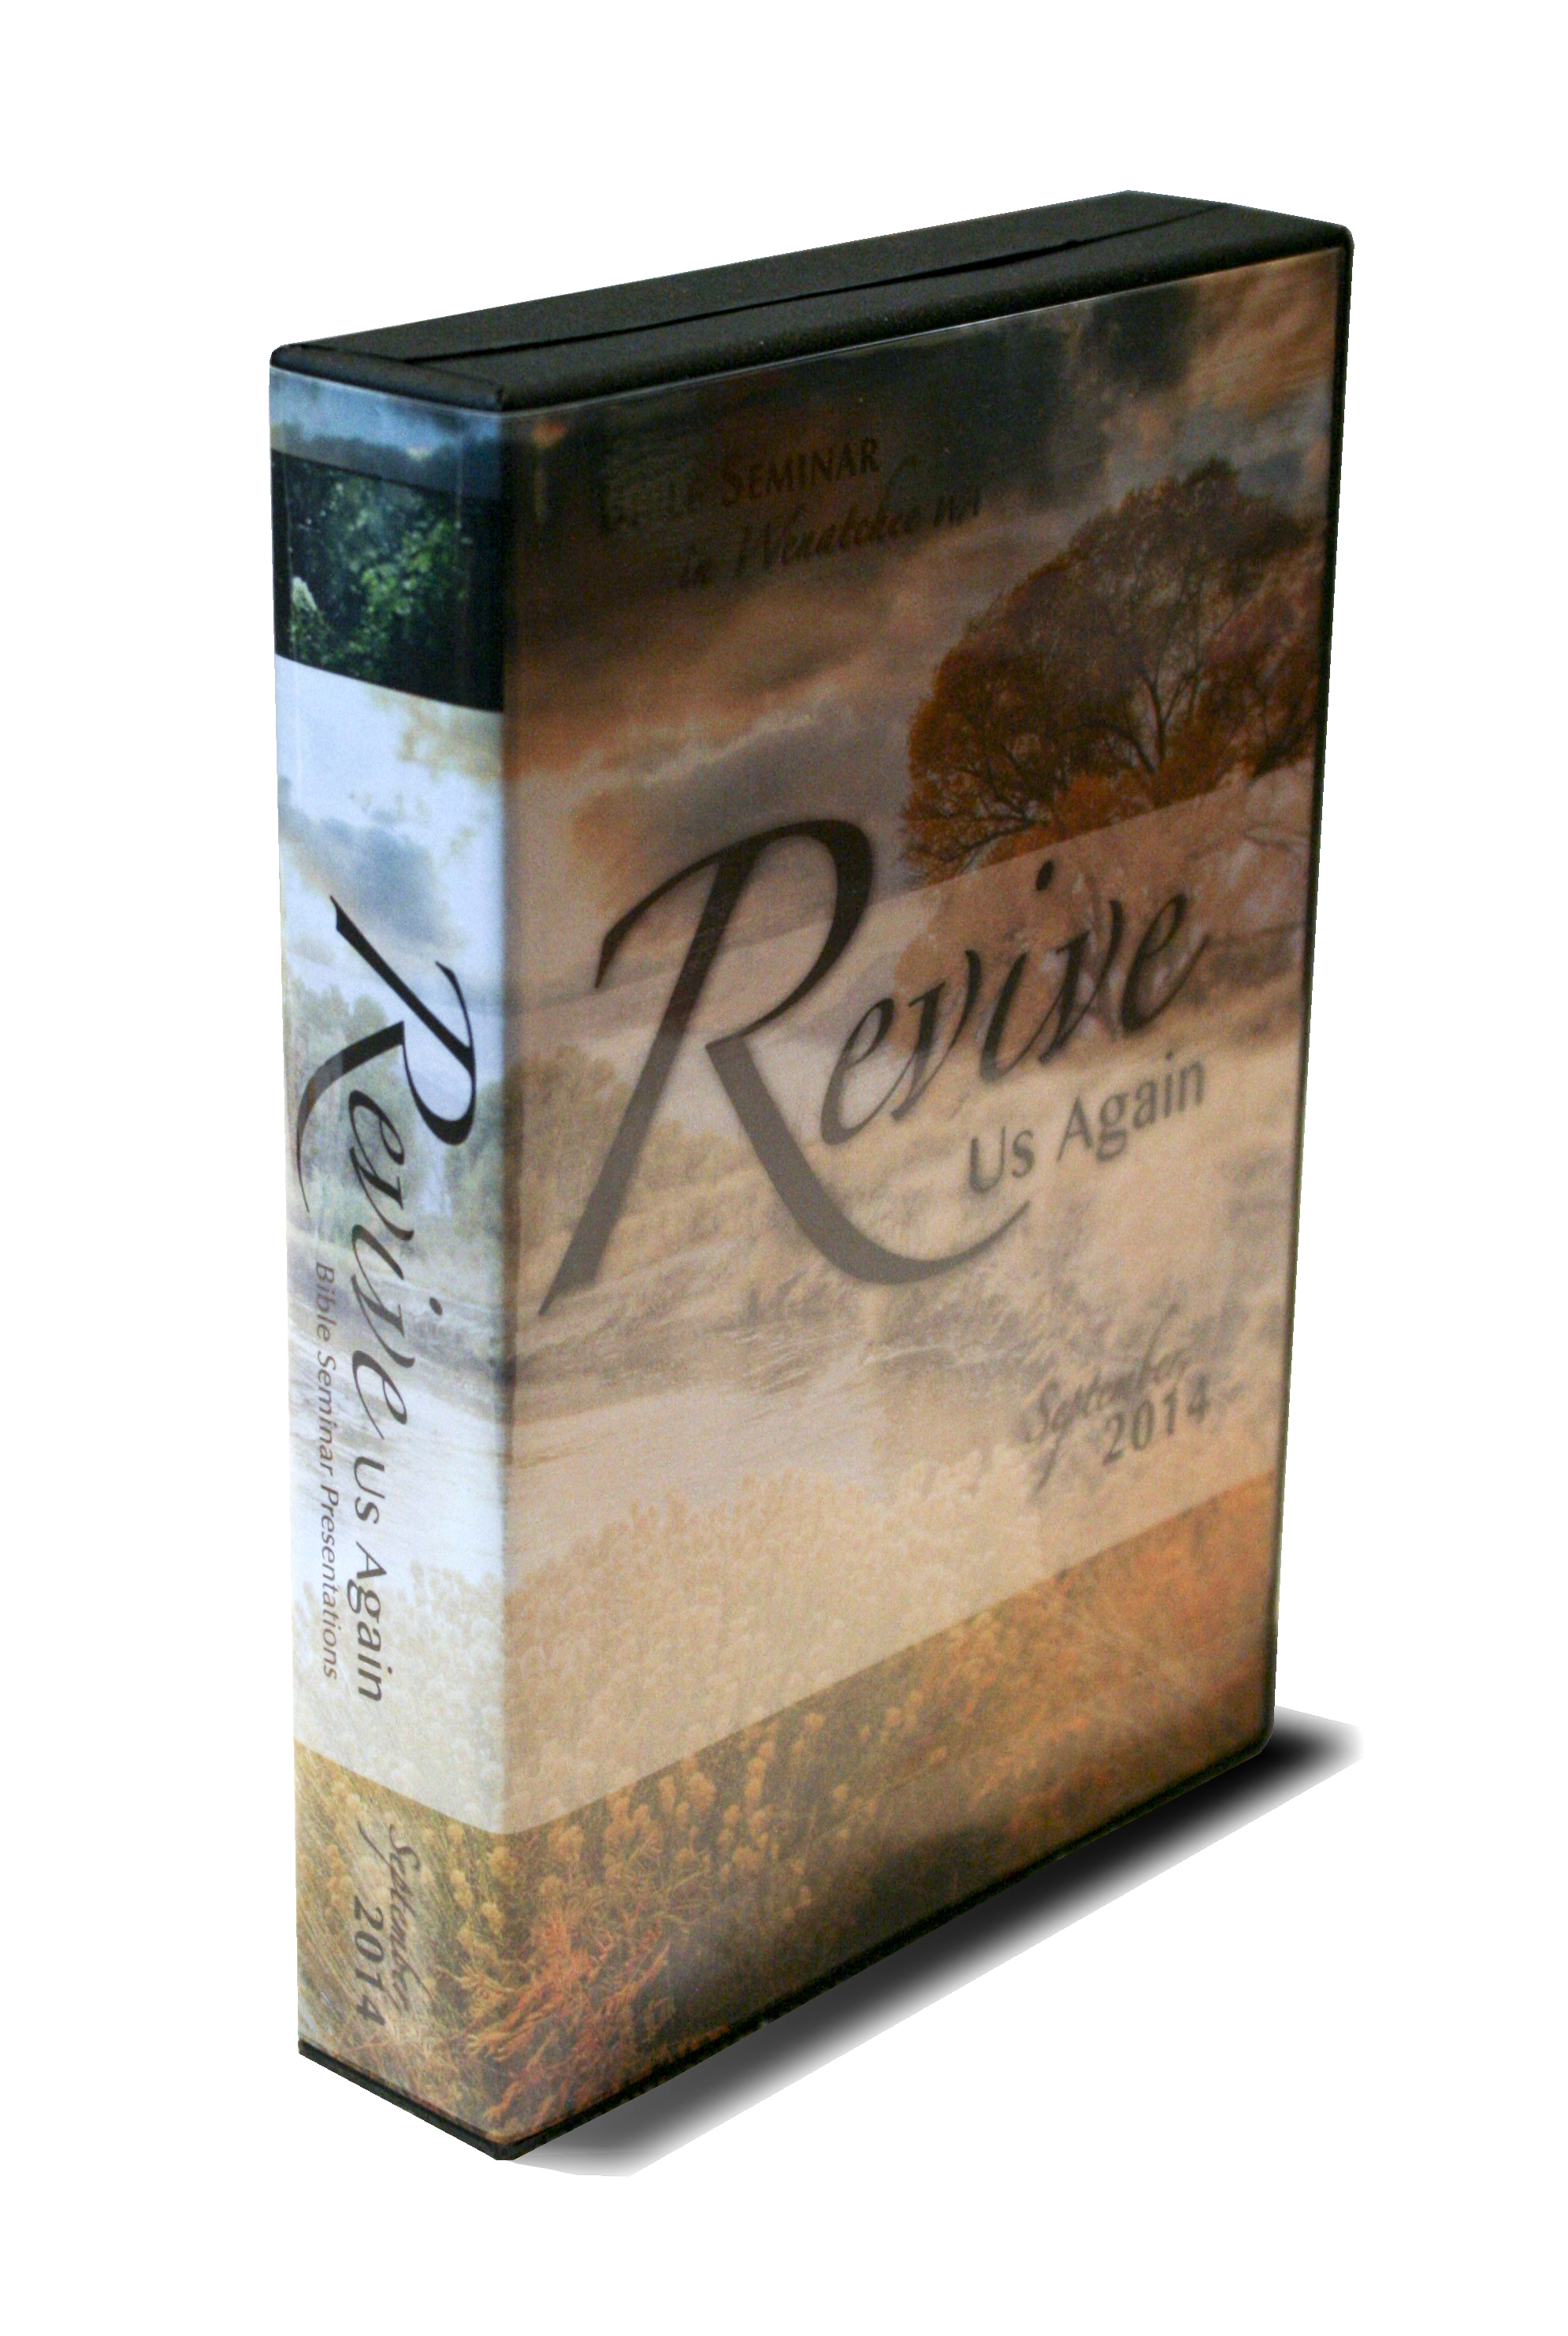 This DVD case contains the 10 discs of the Bible Seminar